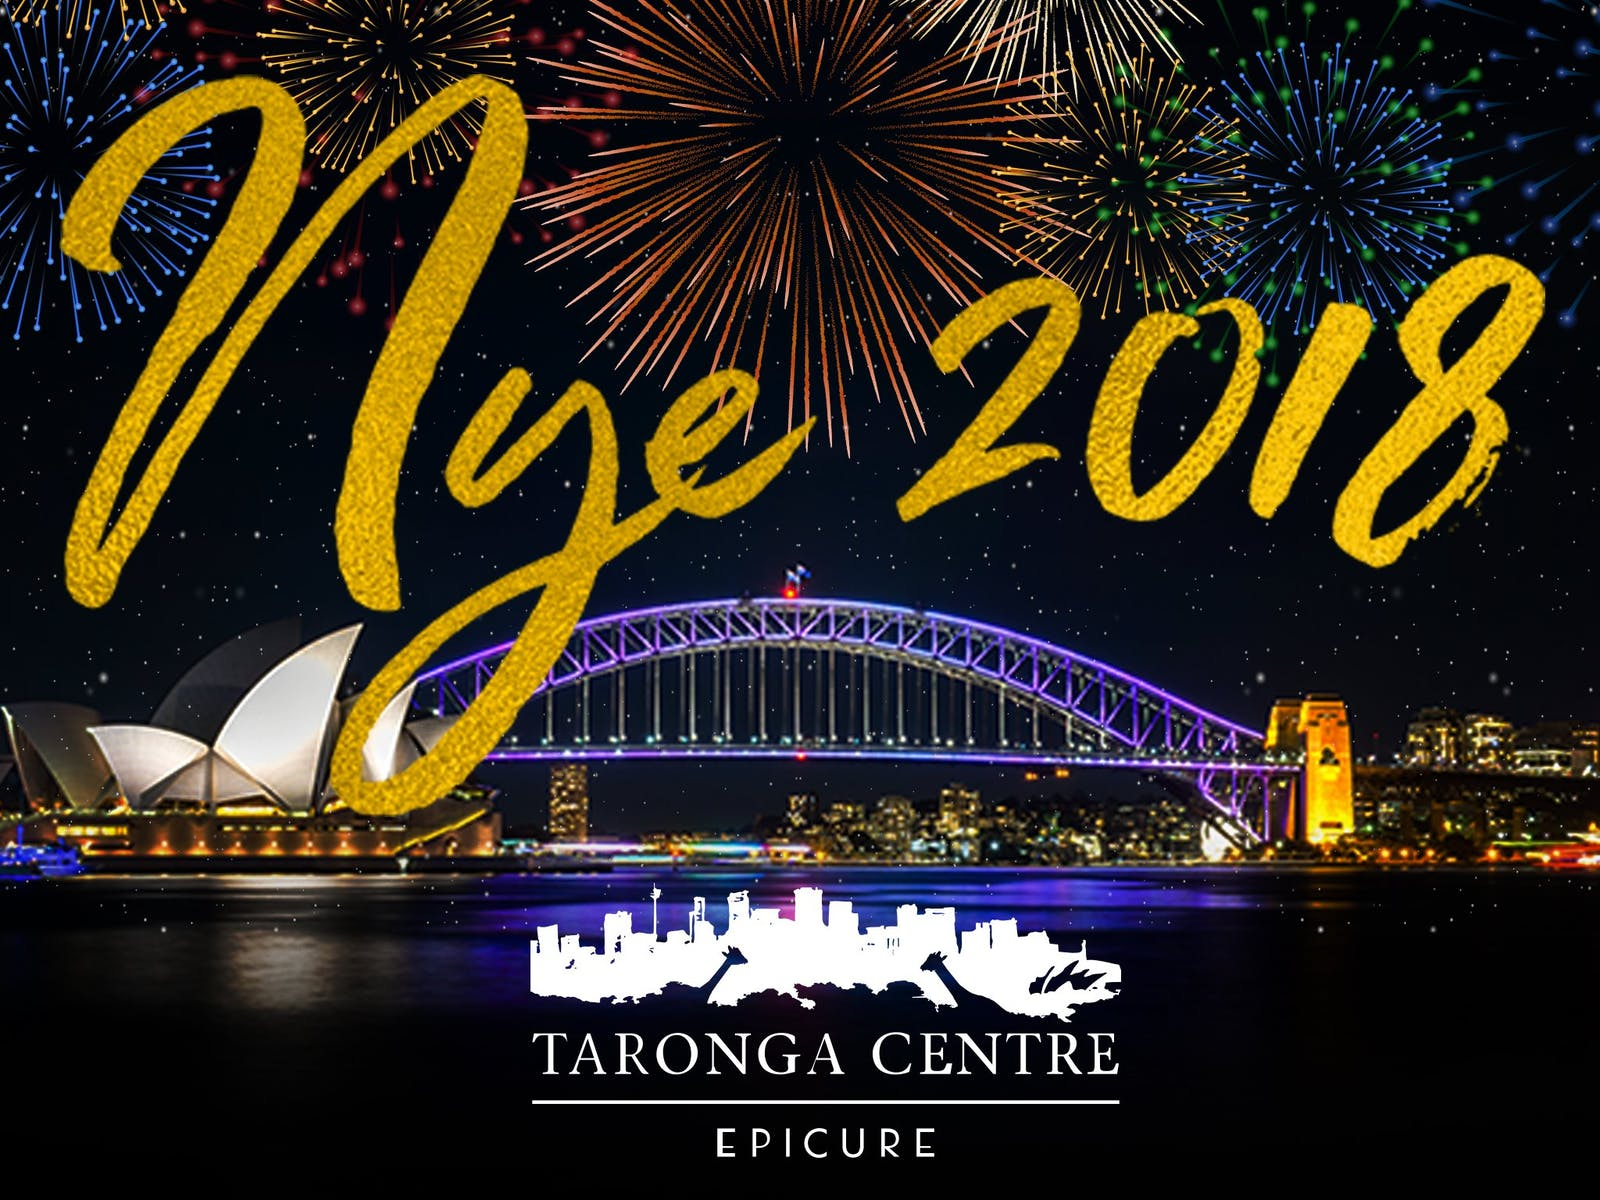 Image for Taronga Centre Harbourview Terrace New Years Eve